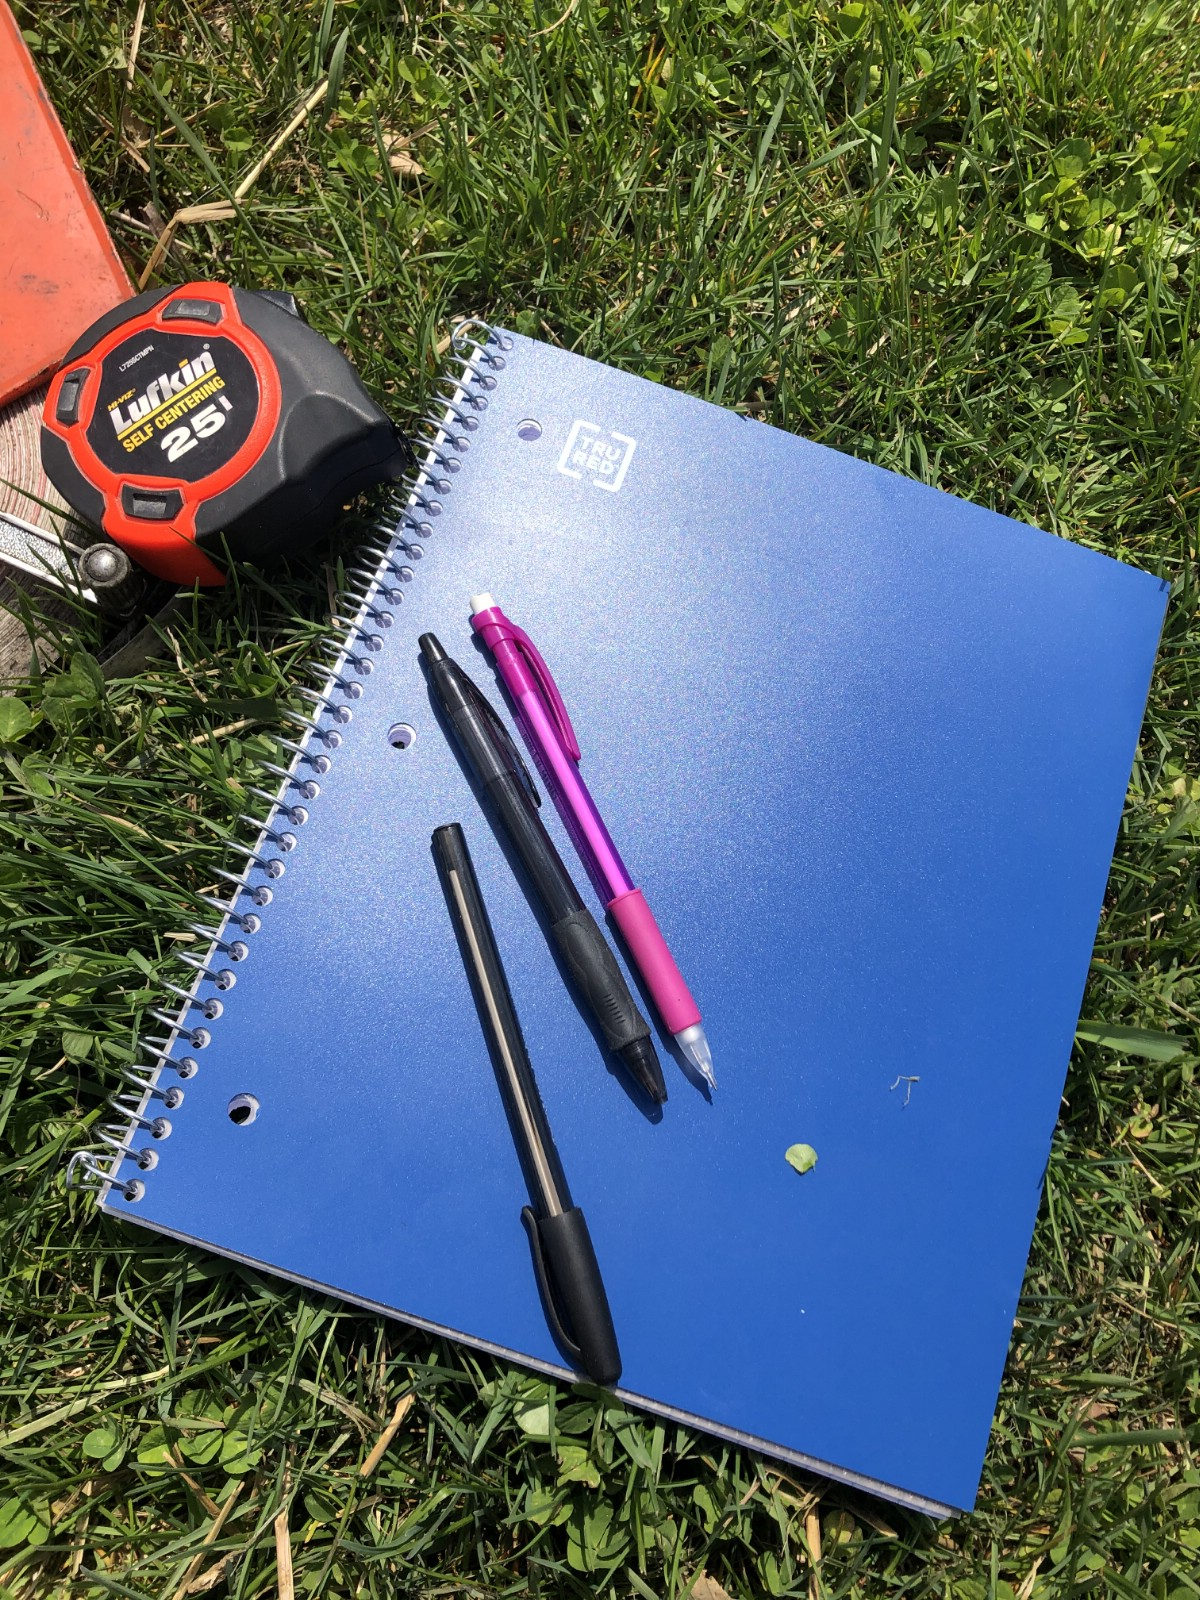 A notebook, pens, and measuring tape for garden planning